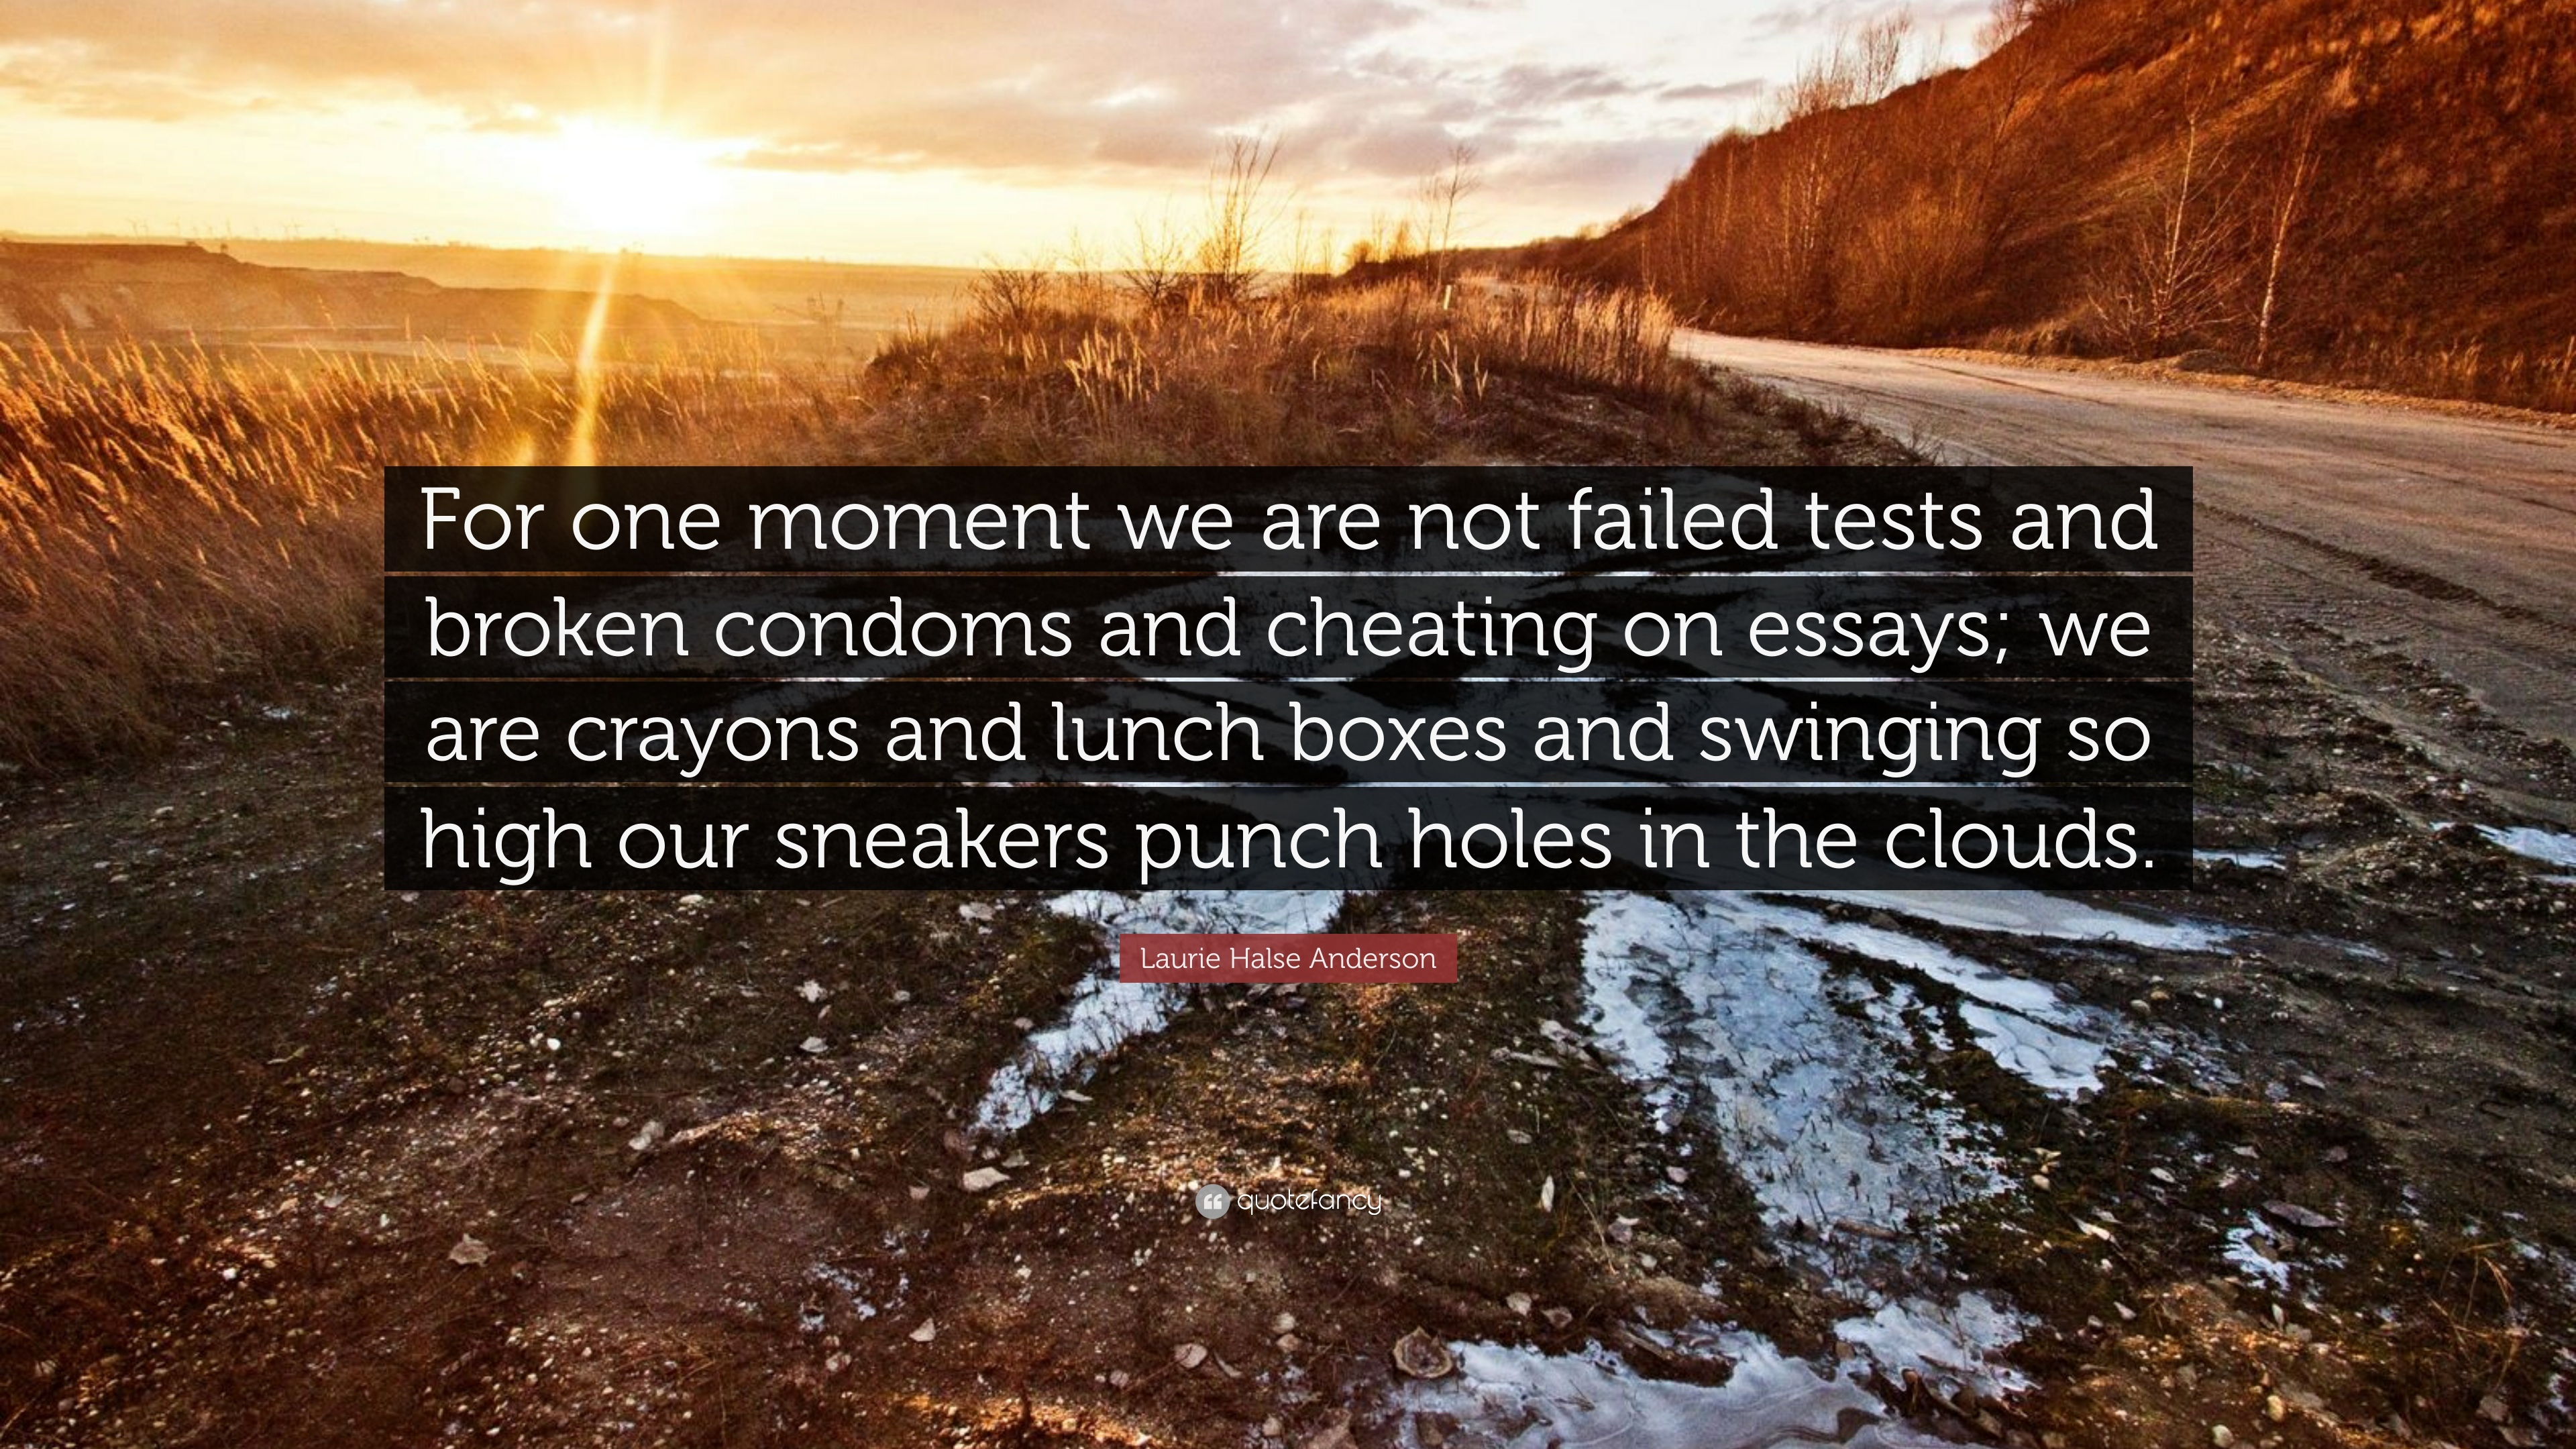 laurie halse anderson quote for one moment we are not failed laurie halse anderson quote for one moment we are not failed tests and broken